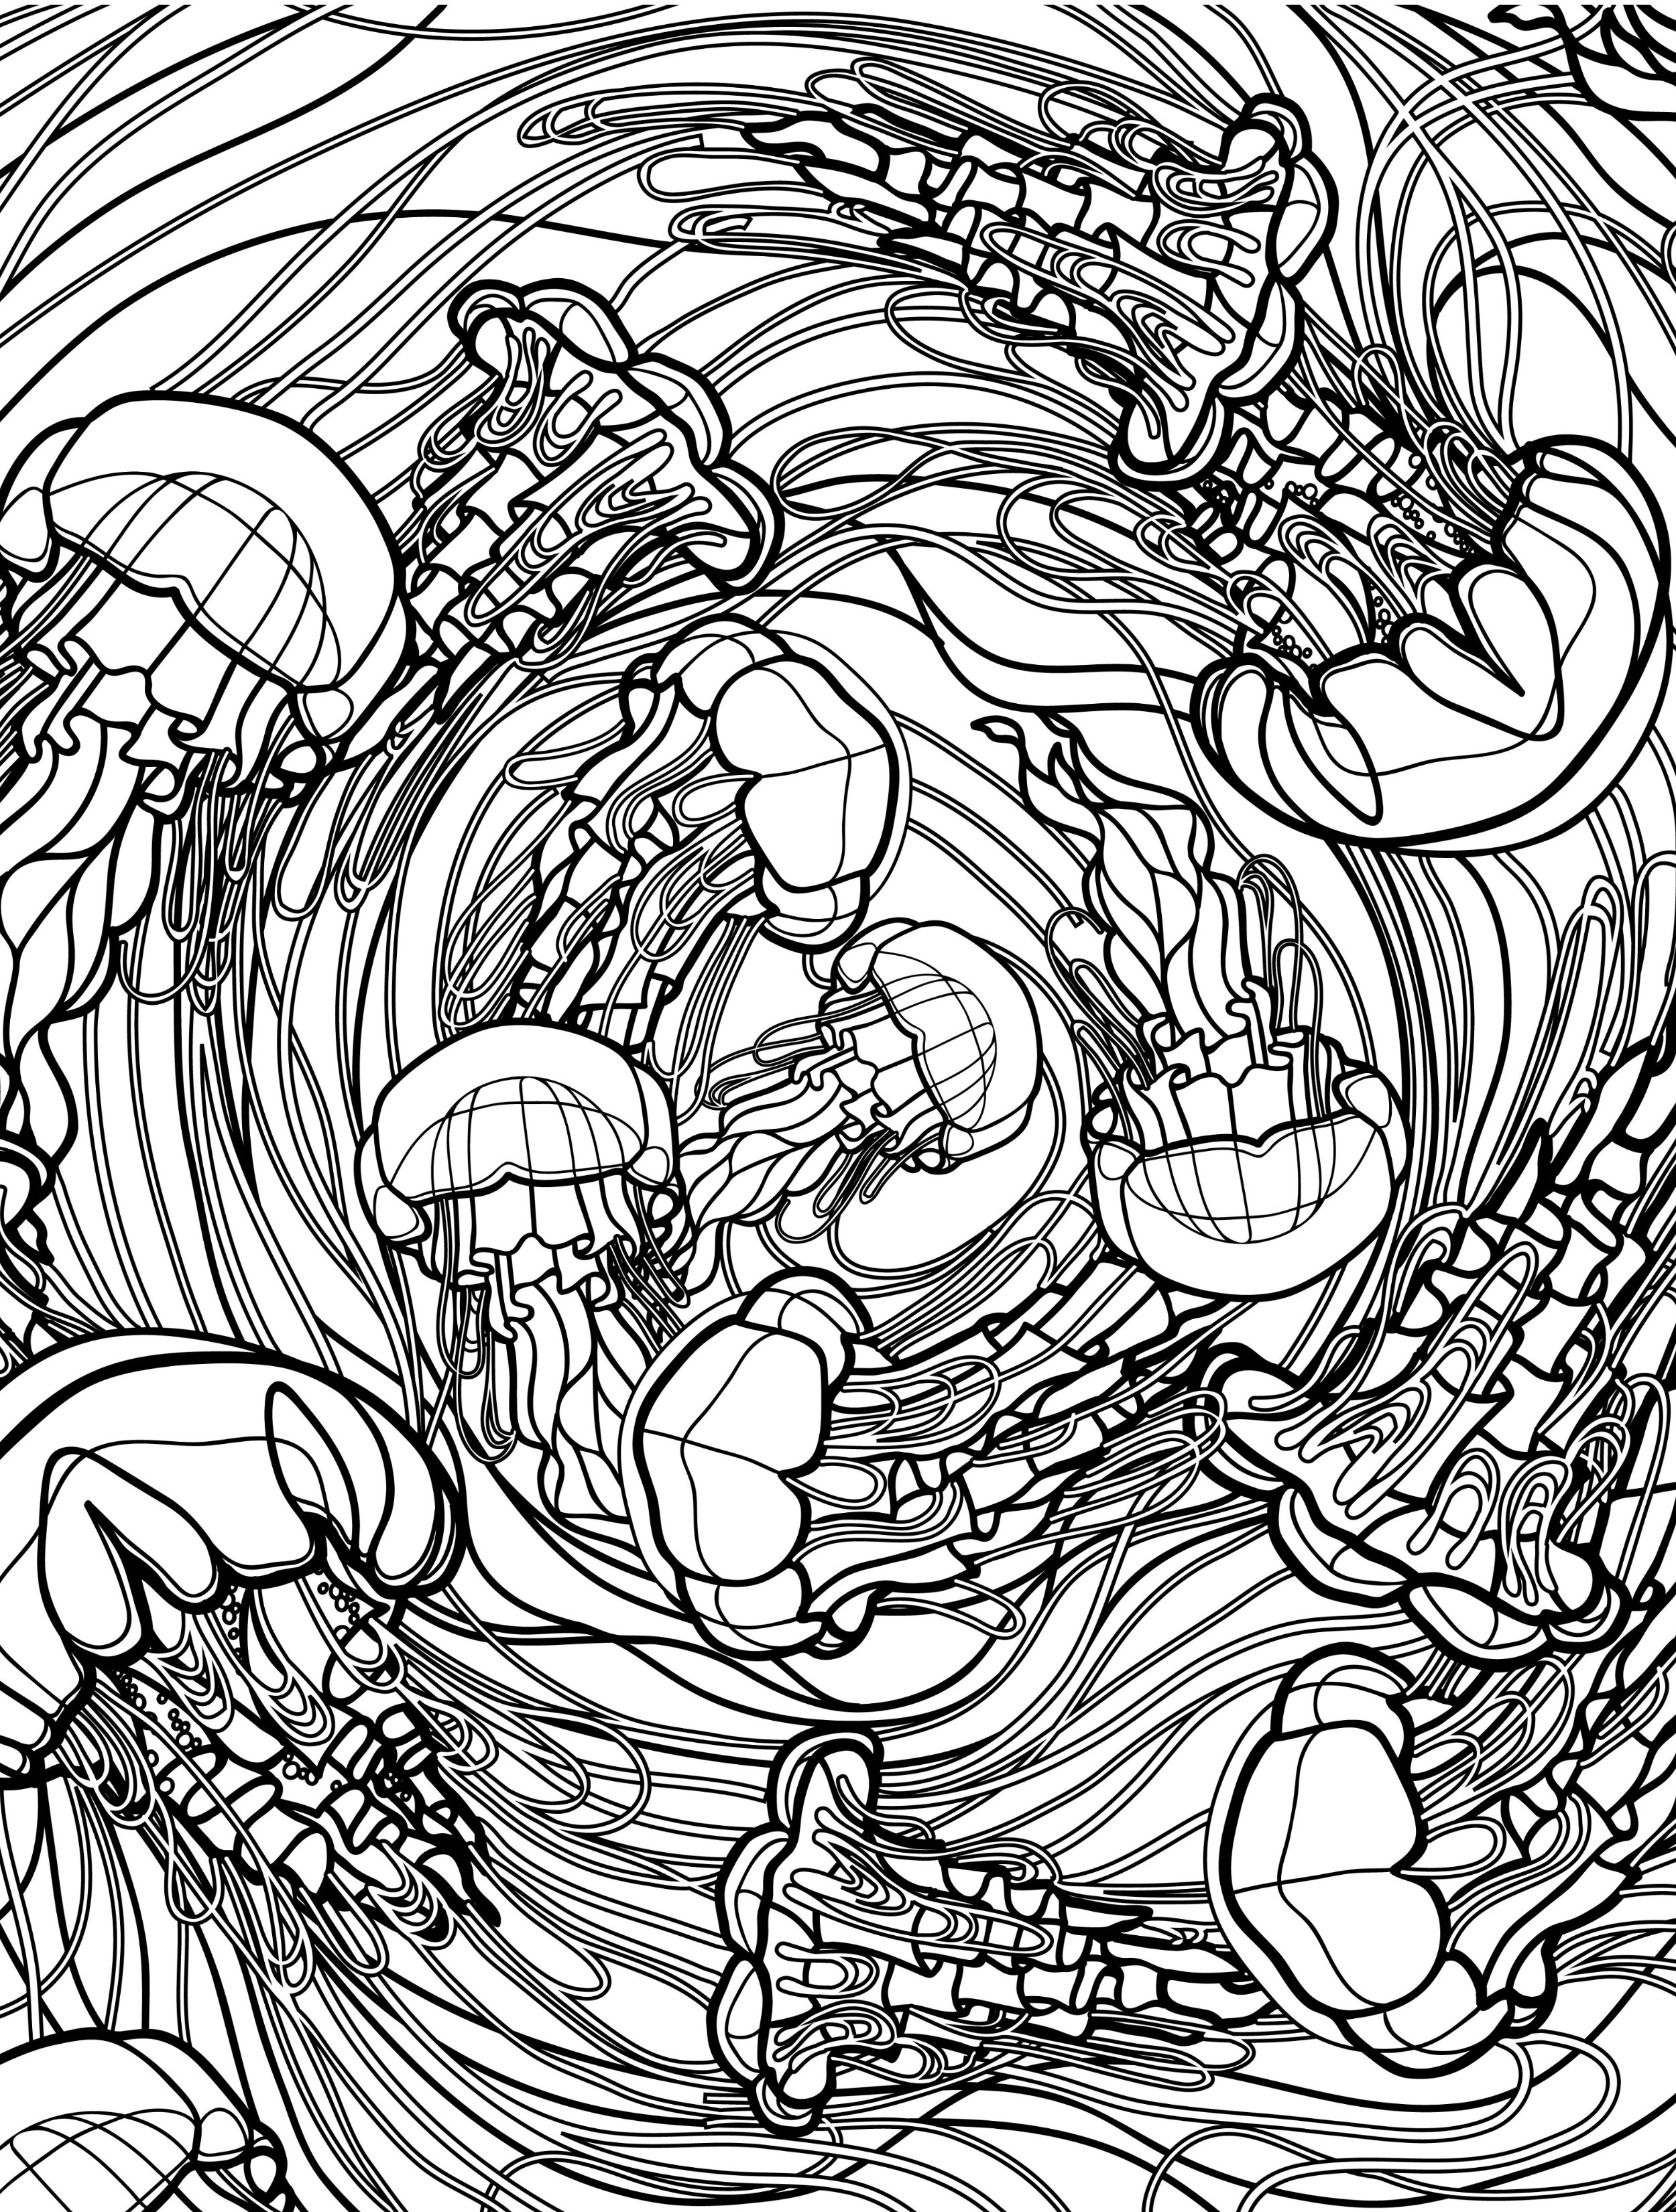 Underwater Coloring Pages For Adults At Getcolorings